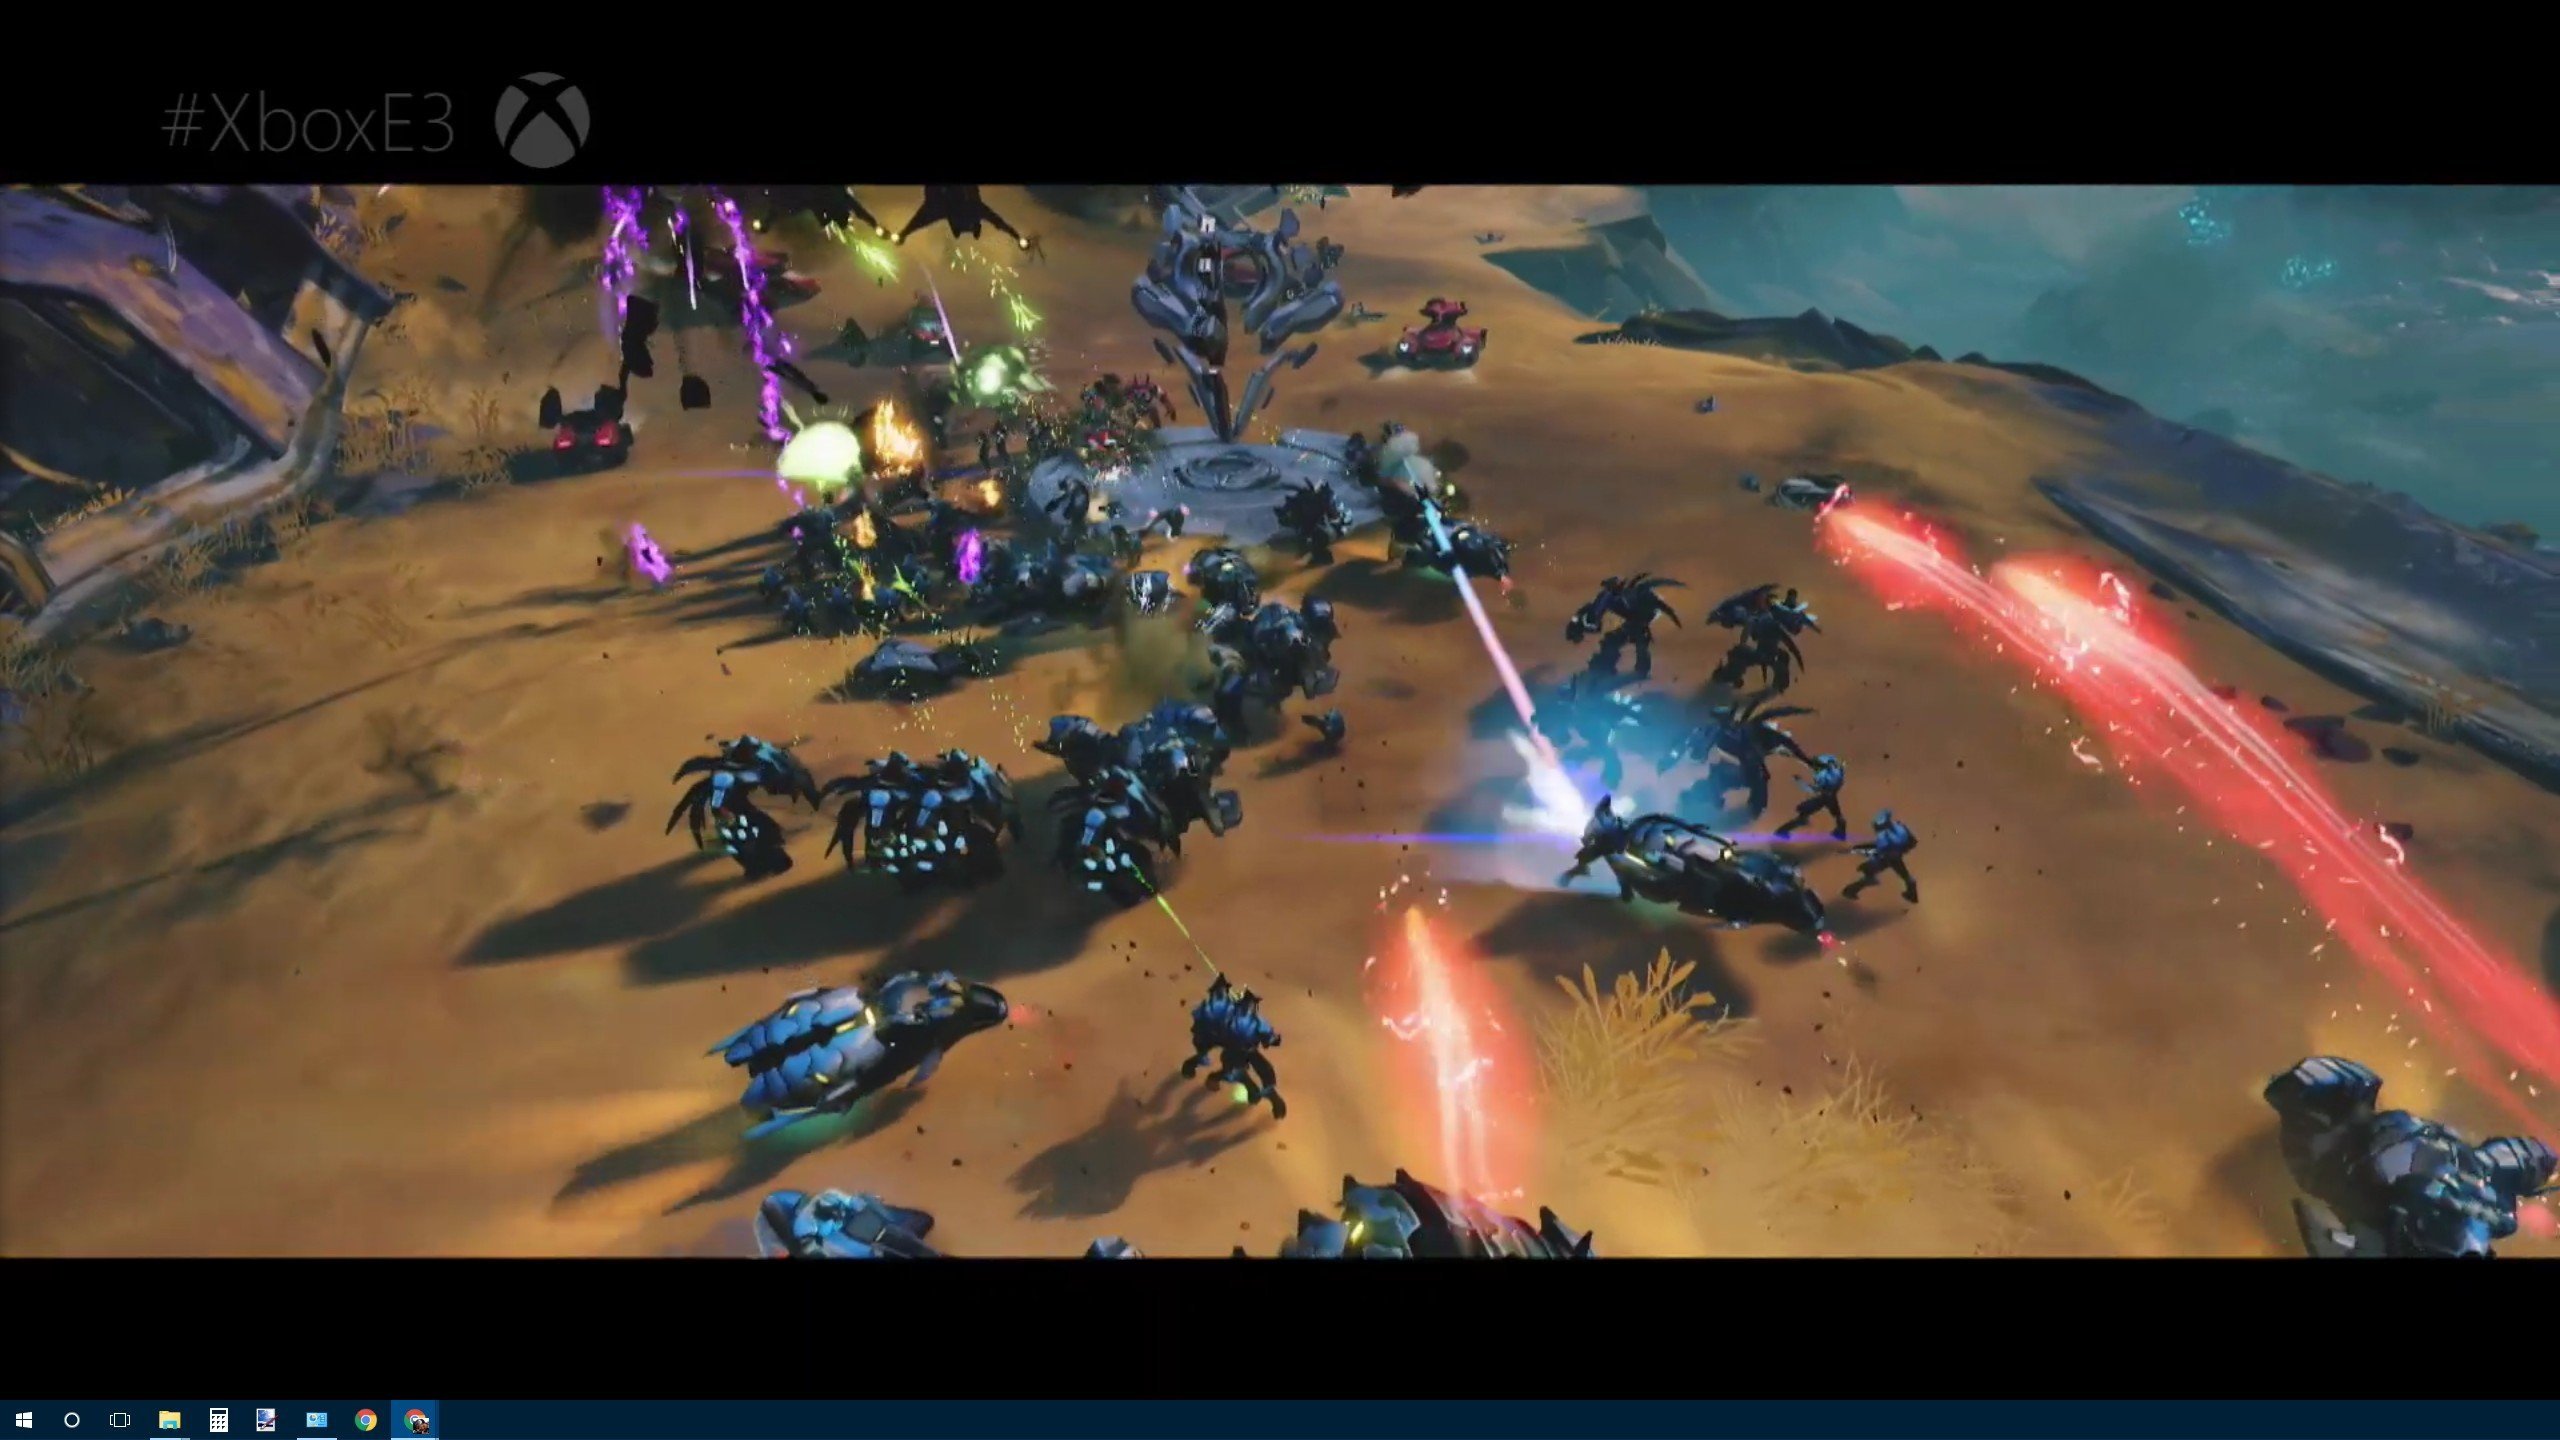 Halo wars 2 - release date, trailer and beta | Expert Reviews